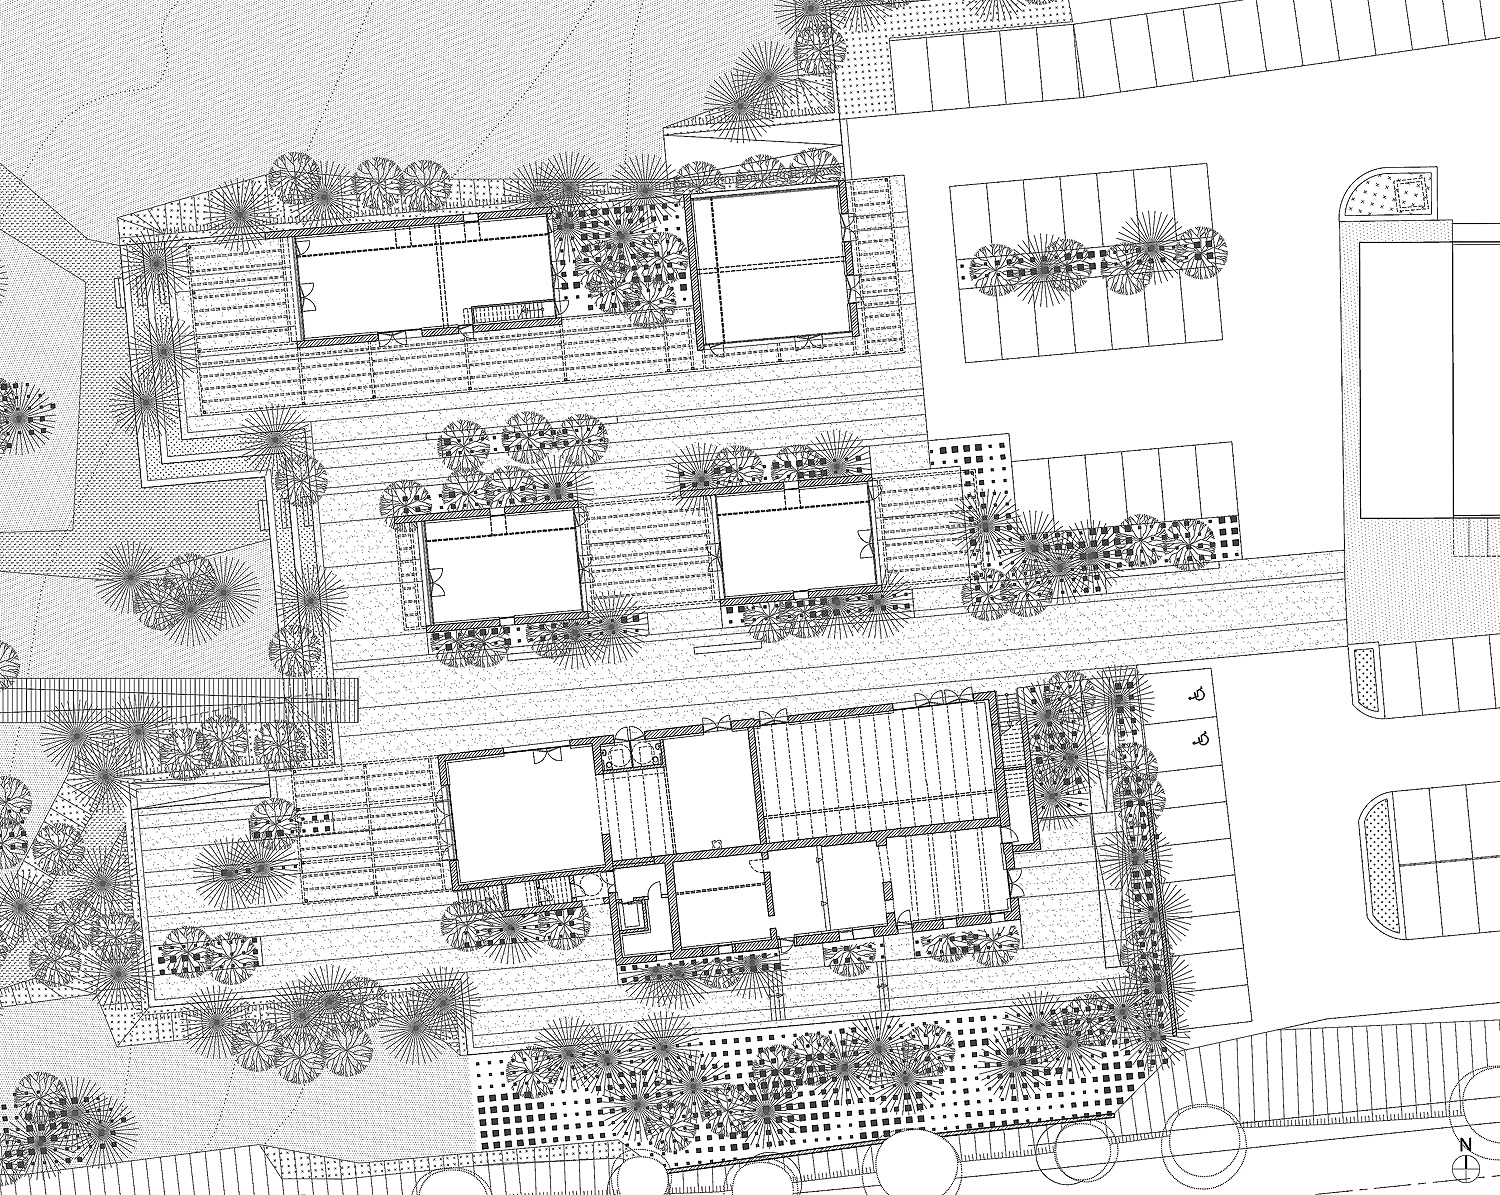 Dessin d 39 architecture d 39 un plan de masse for Dessin plan architecture